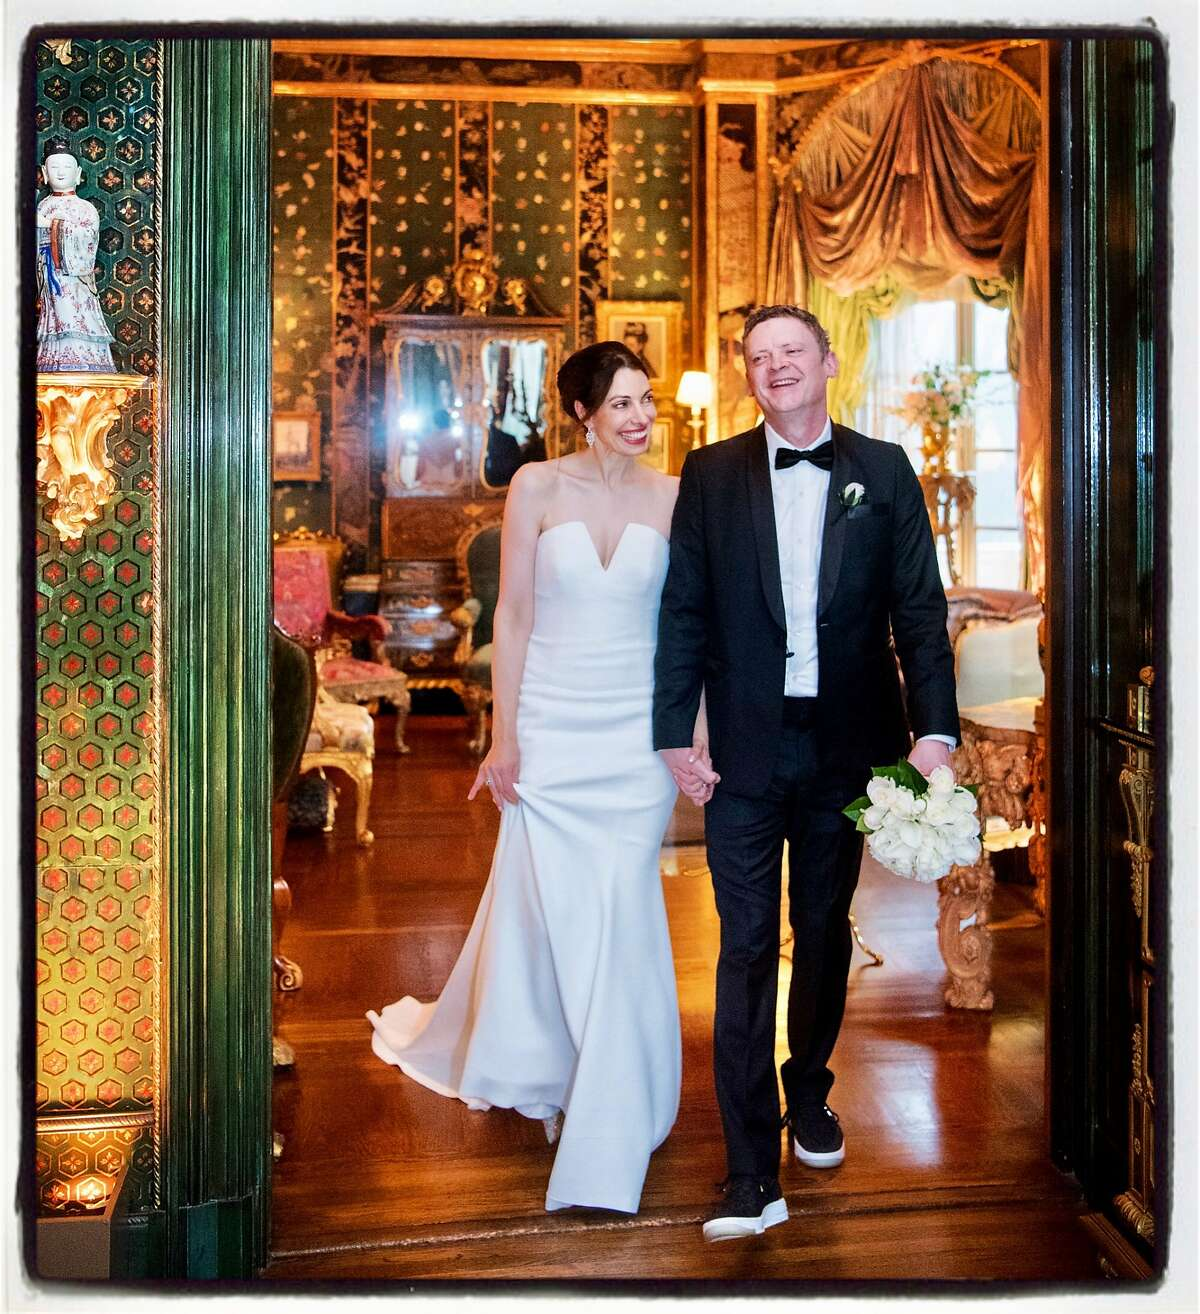 Newlyweds Shannon Bavaro and Peter Getty tied the knot at a black-tie wedding at the holidays. December 2016